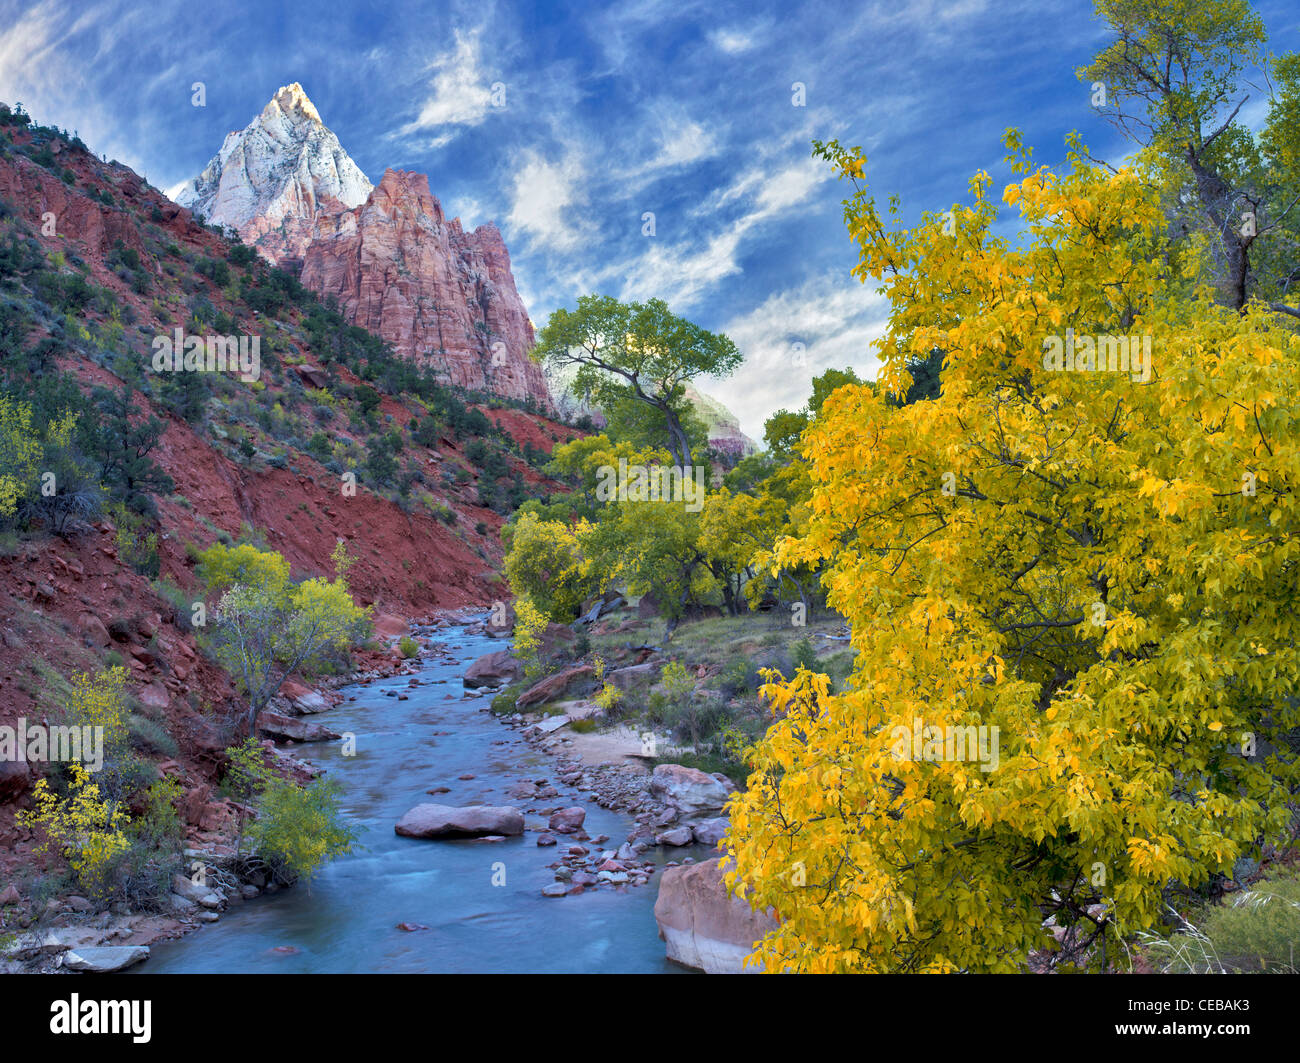 Virgin River and Three Patriarchs. Zion National Park, Utah. - Stock Image